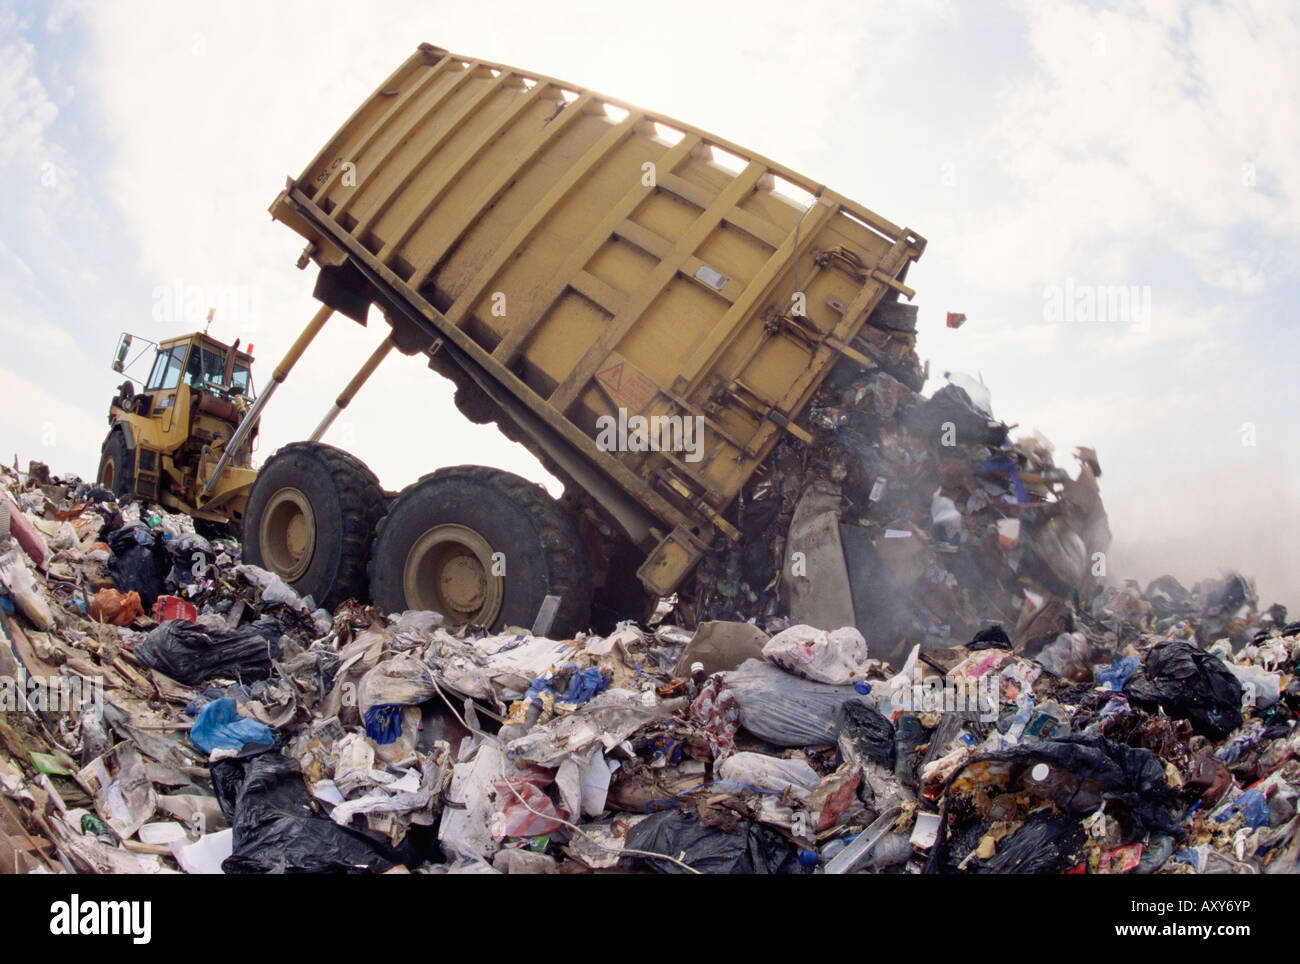 Lorry arrives at waste tipping area at landfill site, Mucking, London, England, United Kingdom, Europe Stock Photo